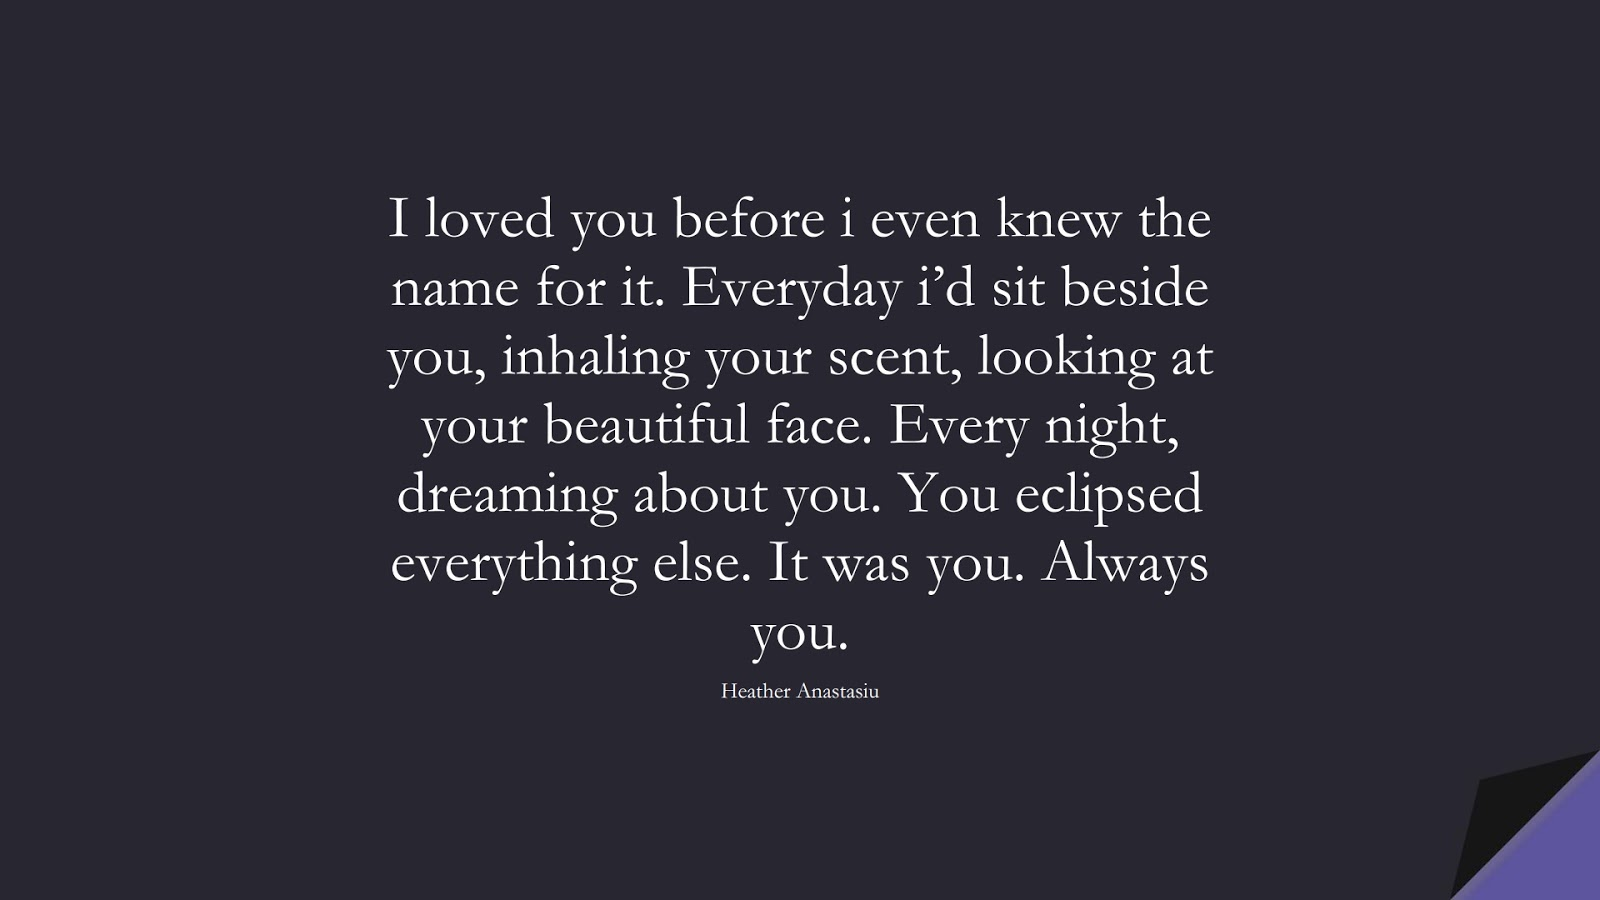 I loved you before i even knew the name for it. Everyday i'd sit beside you, inhaling your scent, looking at your beautiful face. Every night, dreaming about you. You eclipsed everything else. It was you. Always you. (Heather Anastasiu);  #LoveQuotes